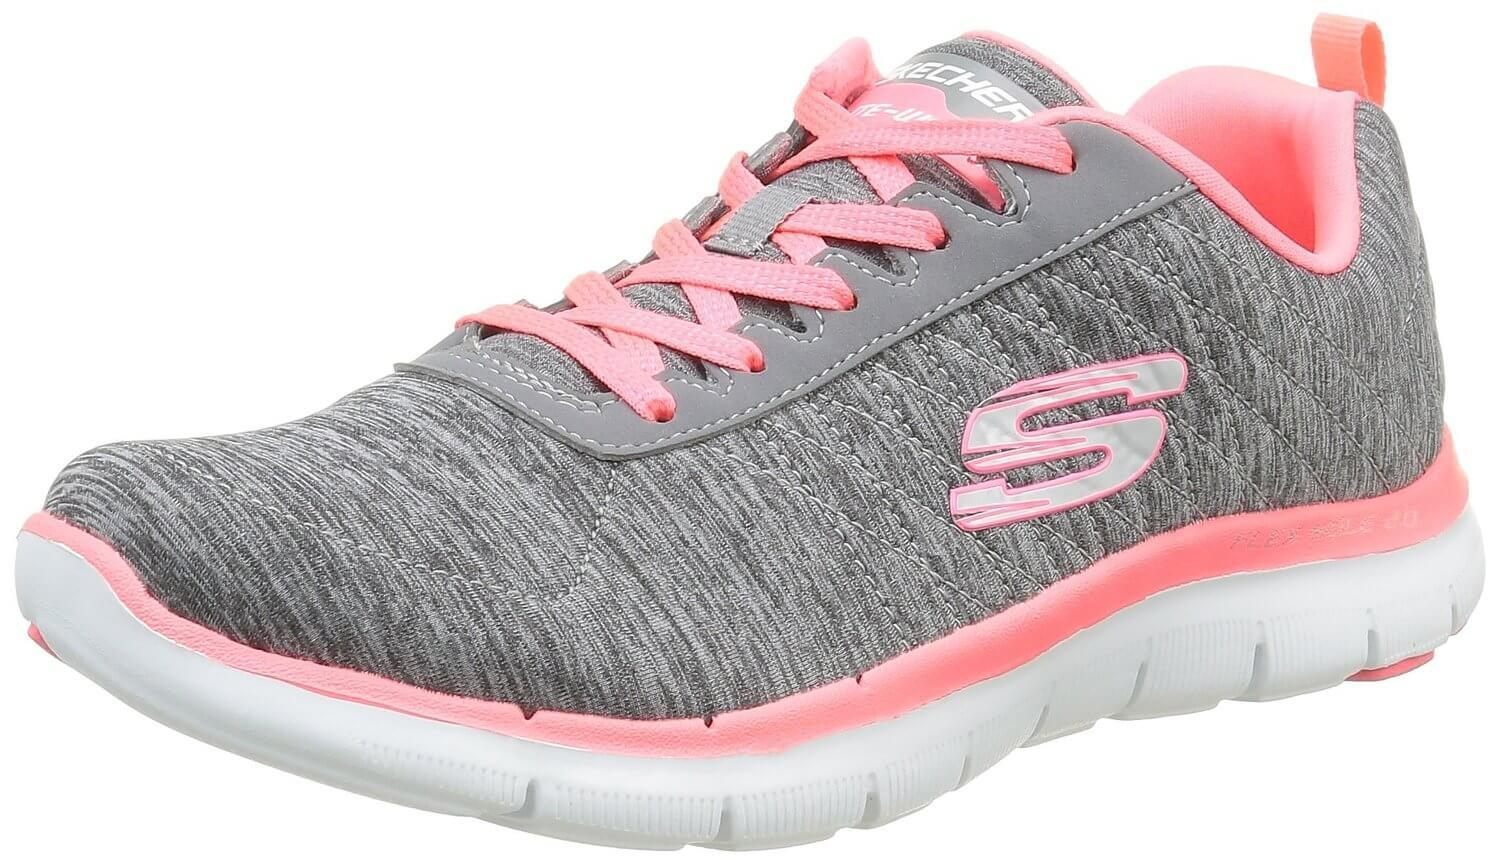 74b070ebeec Skechers Flex Appeal Review - Buy or Not in July 2019?